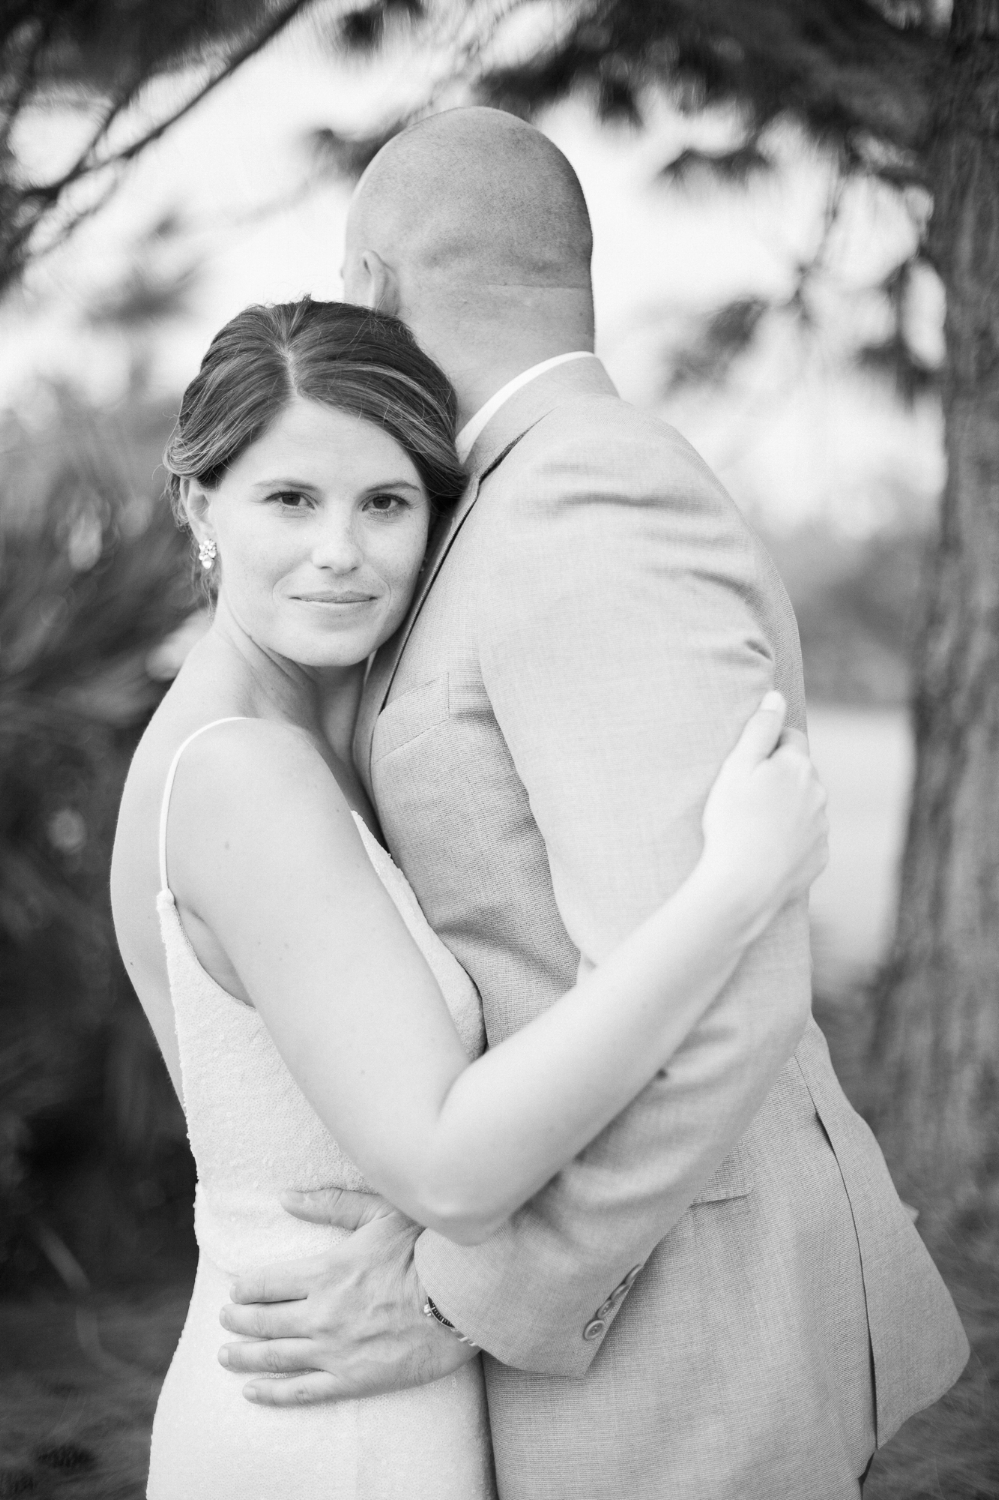 Outdoor wedding portrait of bride and groom in Port St. Lucie, FL